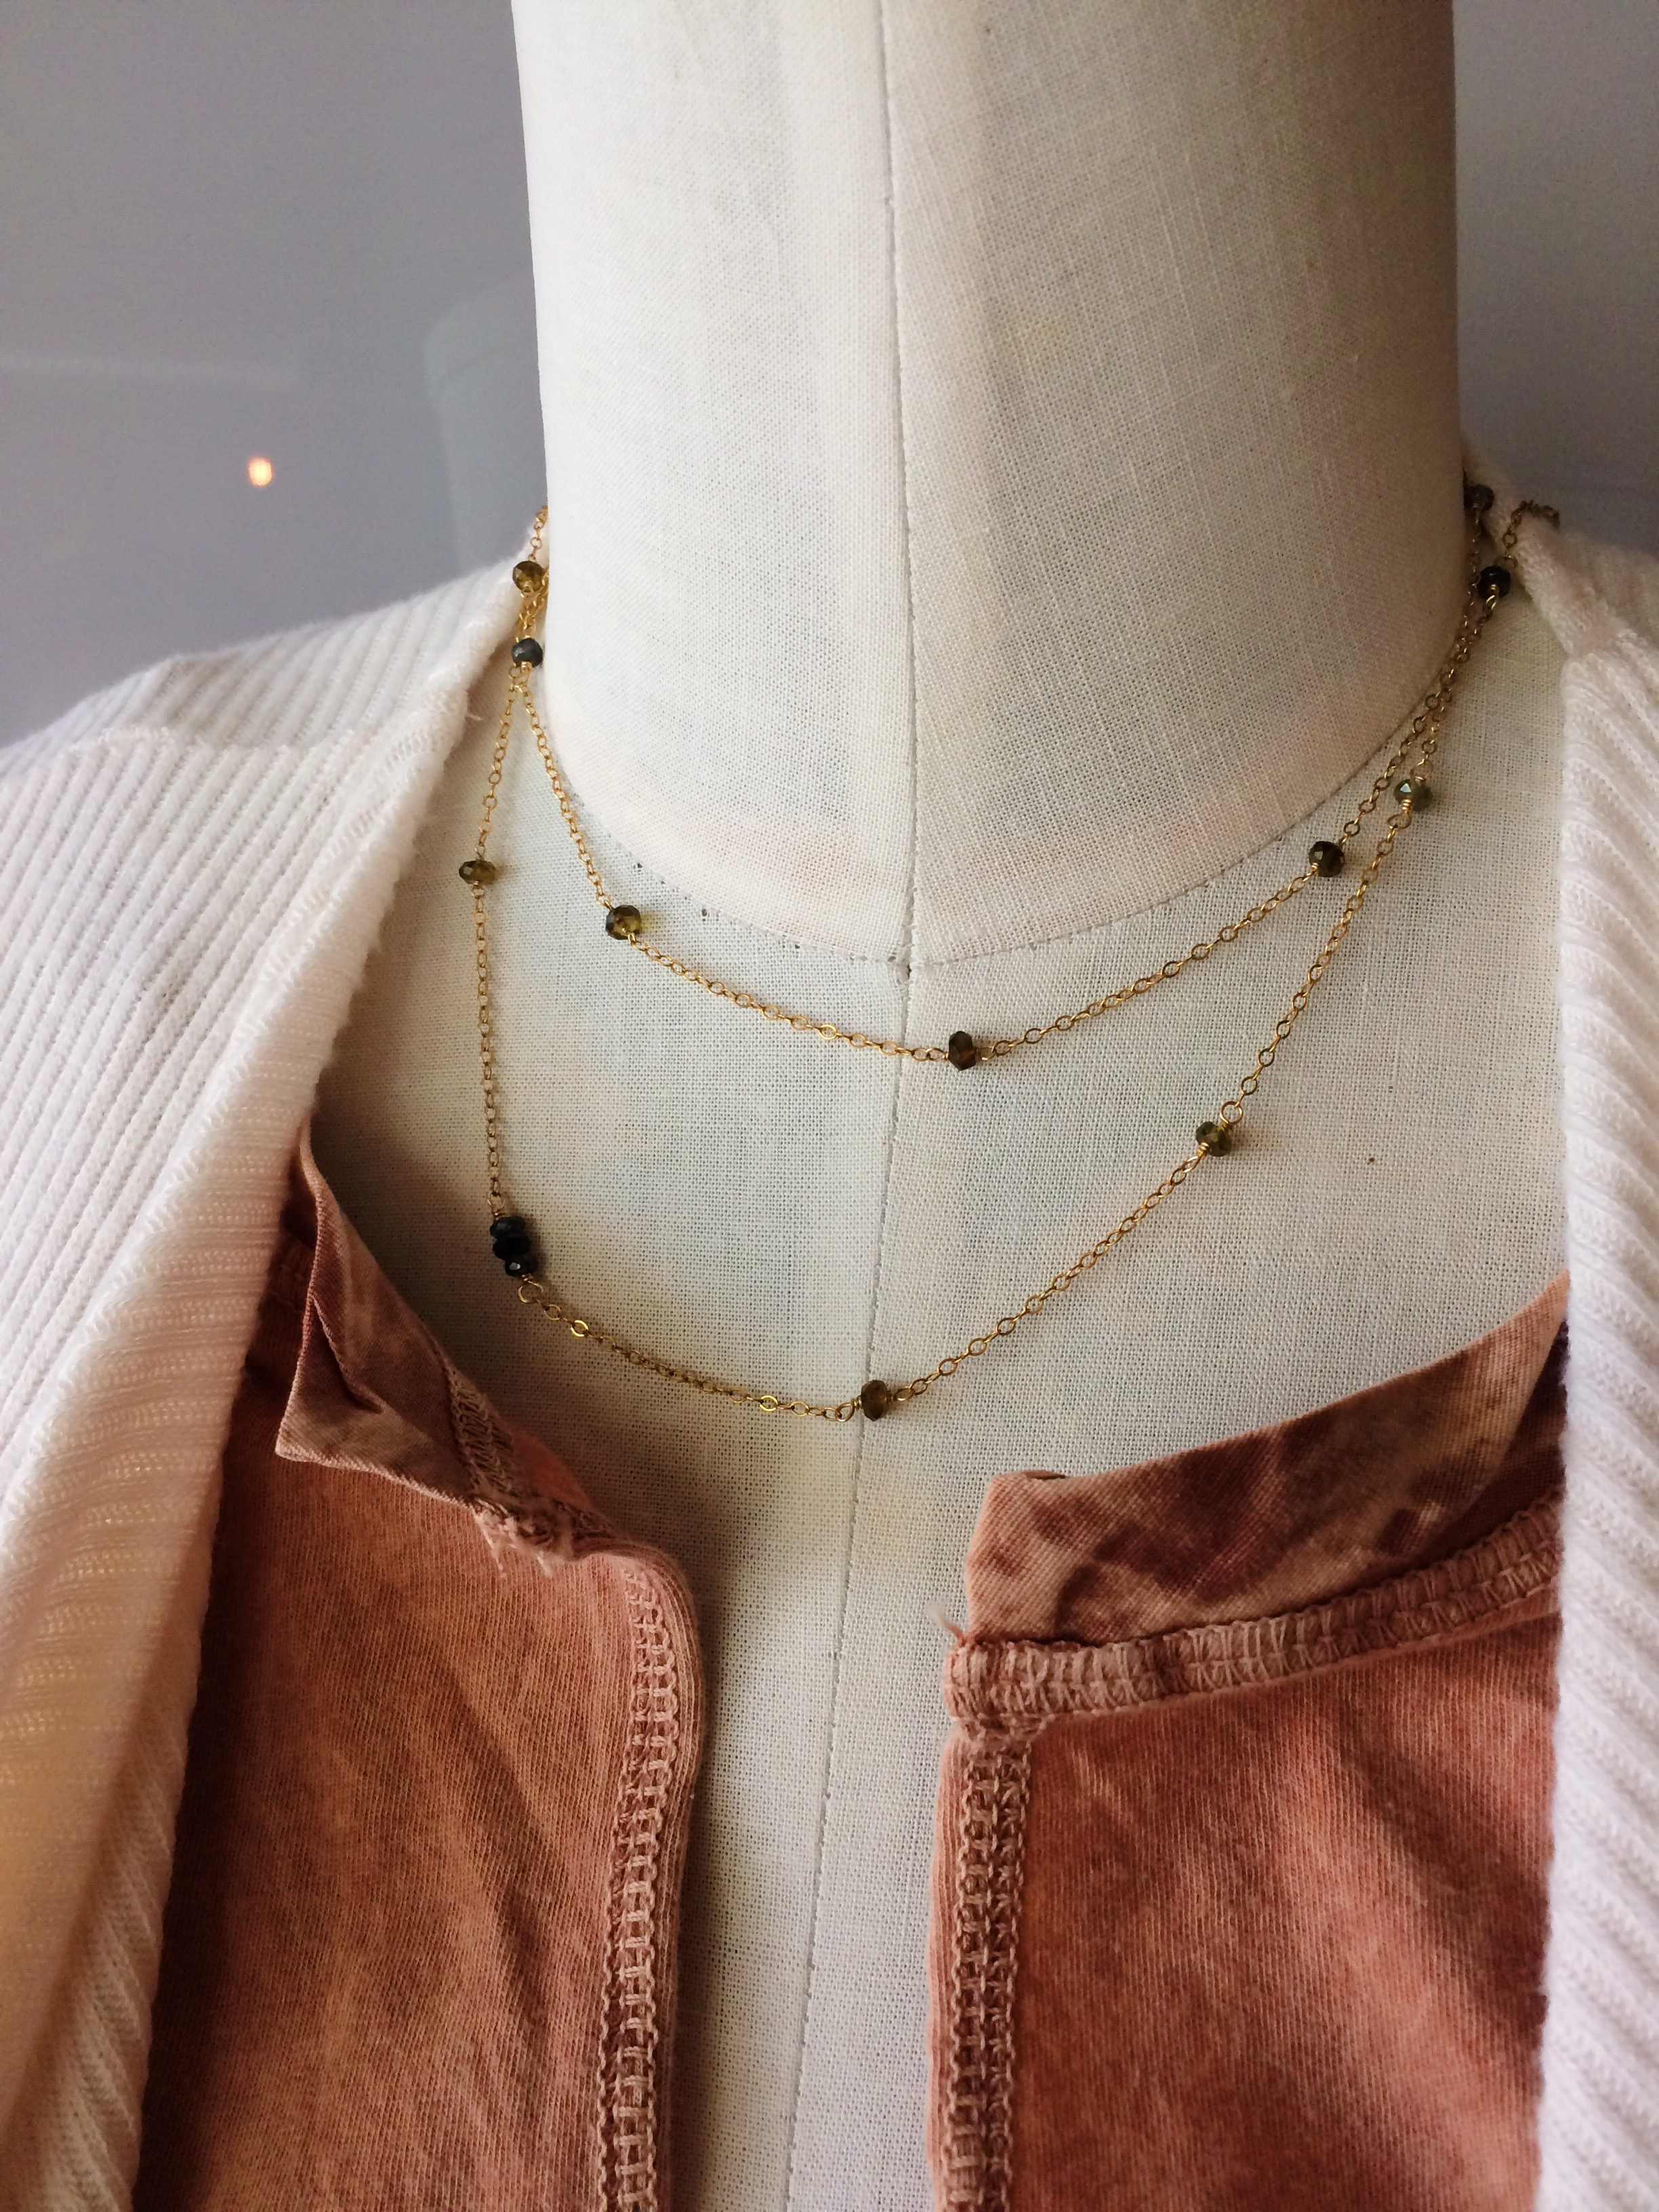 A close up look at the Sapphire layering necklace